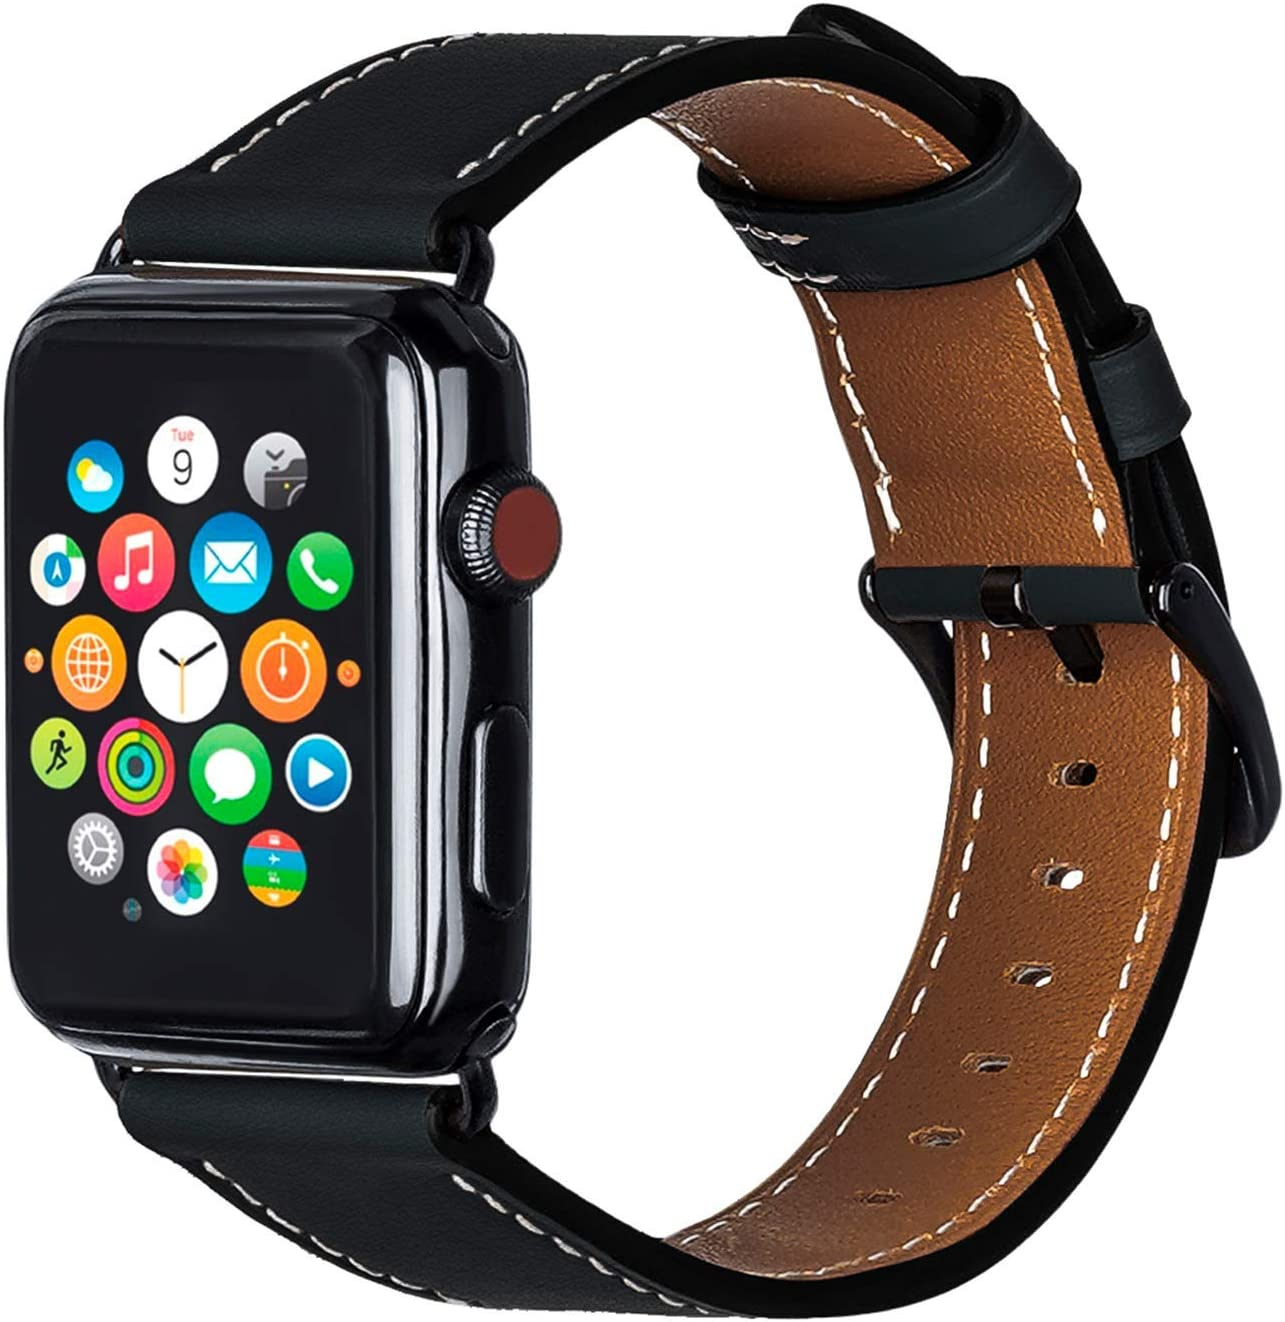 ALADRS Watch Straps Compatible with Apple Watch Leather Band 40mm 38mm, Wristbands Replacement for iWatch Series 6 5 4, SE (40mm) Series 3 2 1 (38mm), Black